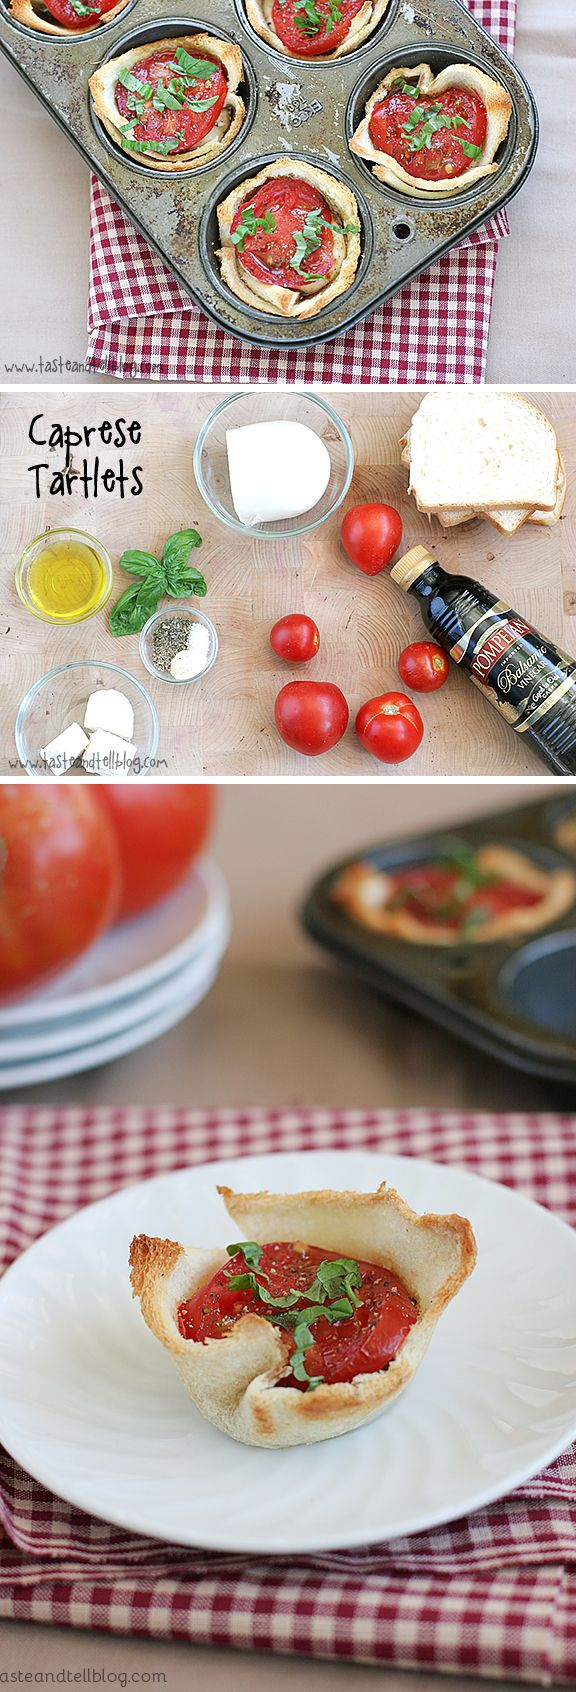 Caprese Tartlets - Mini tartlets filled with seasoned cream cheese, fresh mozzarella, tomato and topped with basil. The perfect end of summer appetizer or side dish!